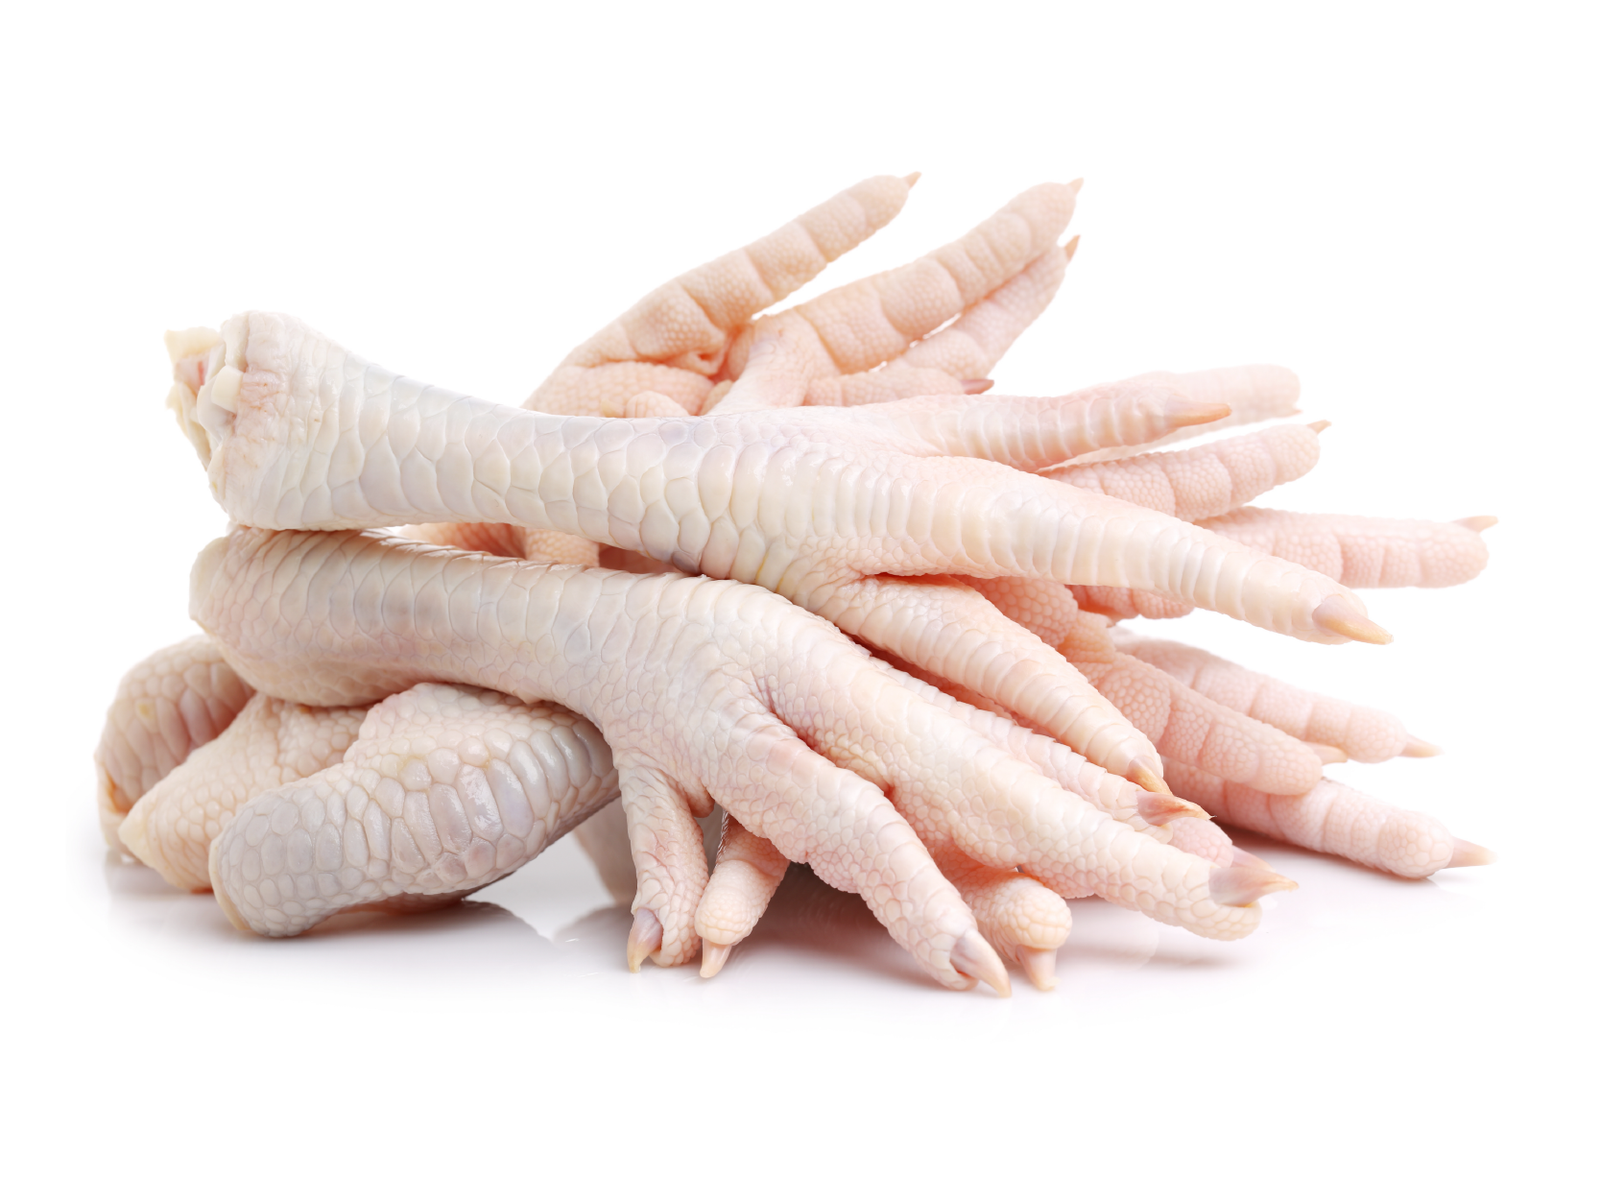 pasture raised chicken feet